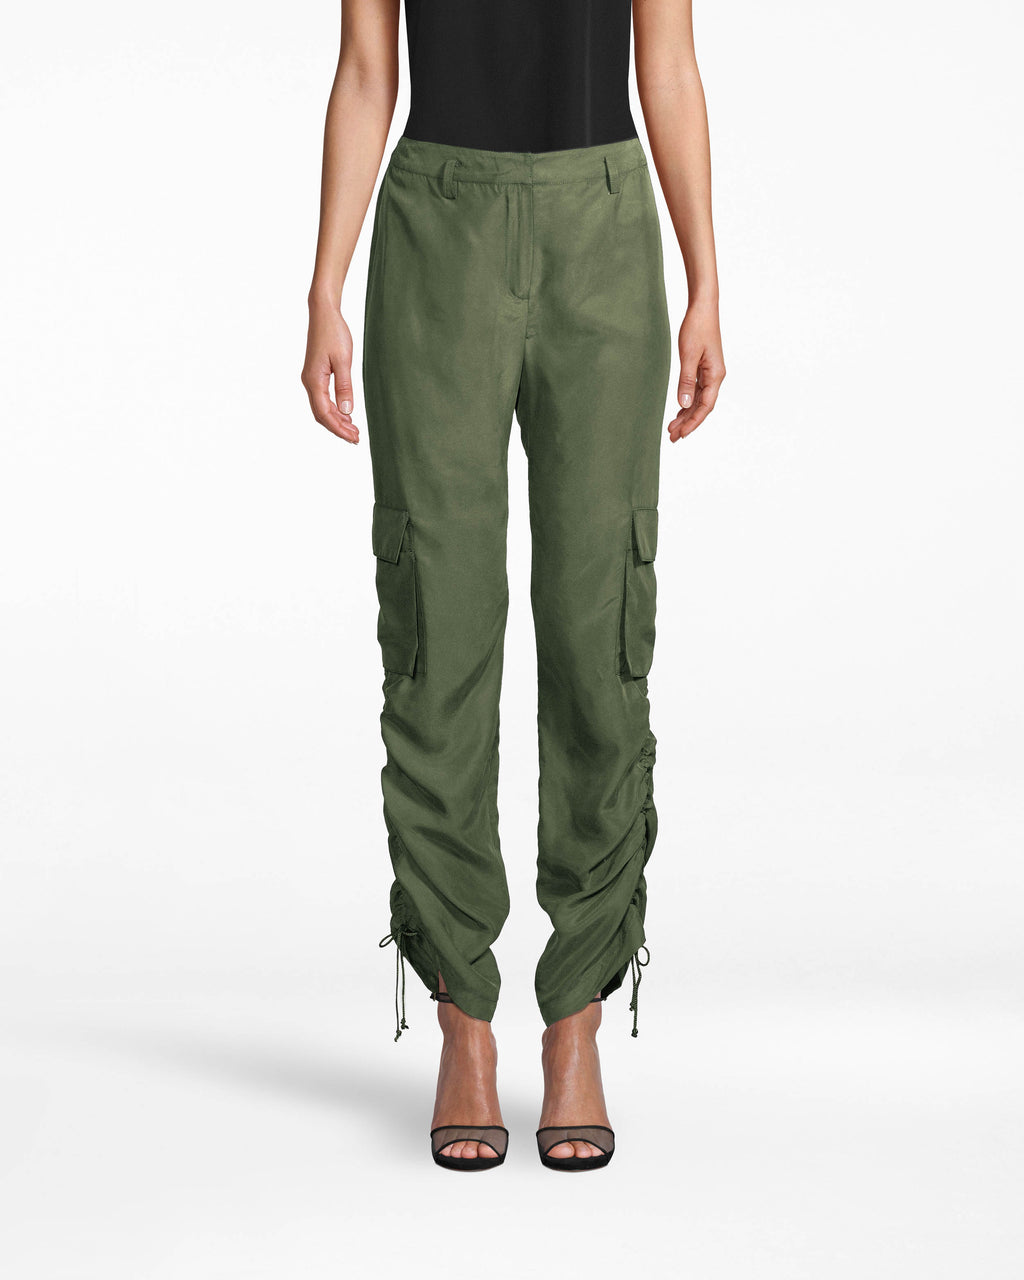 CP18023 - WASHED HABOTAI CARGO PANT - bottoms - pants - CARGO PANTS, REIMAGINED. DESIGNED IN AIRY WASHED HABOTAI, THESE PANTS HAVE CLASSIC CARGO POCKETS AND FLATTERING RUCHING ALONG THE CALF. Add 1 line break STYLIST TIP: WEAR WITH A NETURAL TOP AND THE MATCHING JACKET FOR THE COMPLETE LOOK.